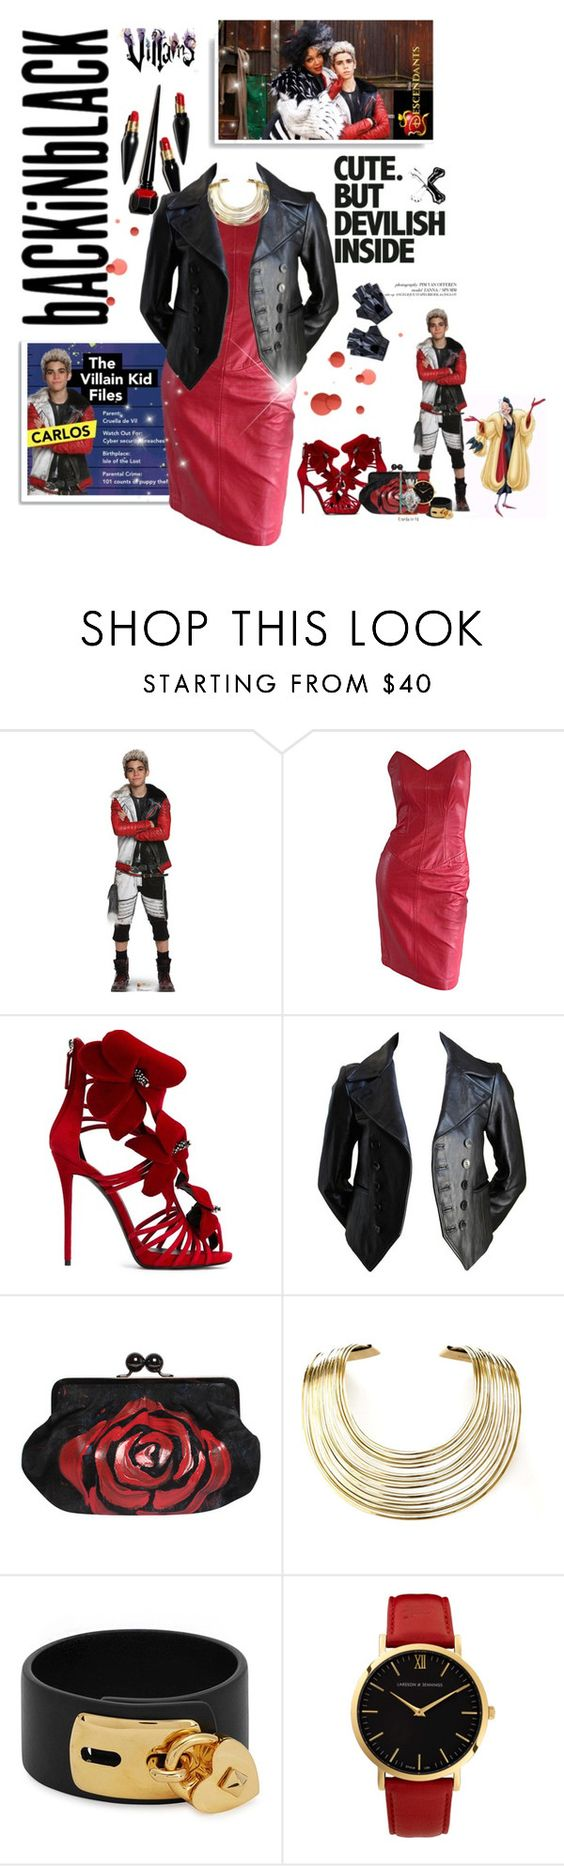 """""""Disney's Descendants #carlos #cruelladeville (#580)"""" by nobility99 ❤ liked on Polyvore featuring Patagonia, Disney, Giuseppe Zanotti, Bisjoux, Valentino and Larsson & Jennings"""